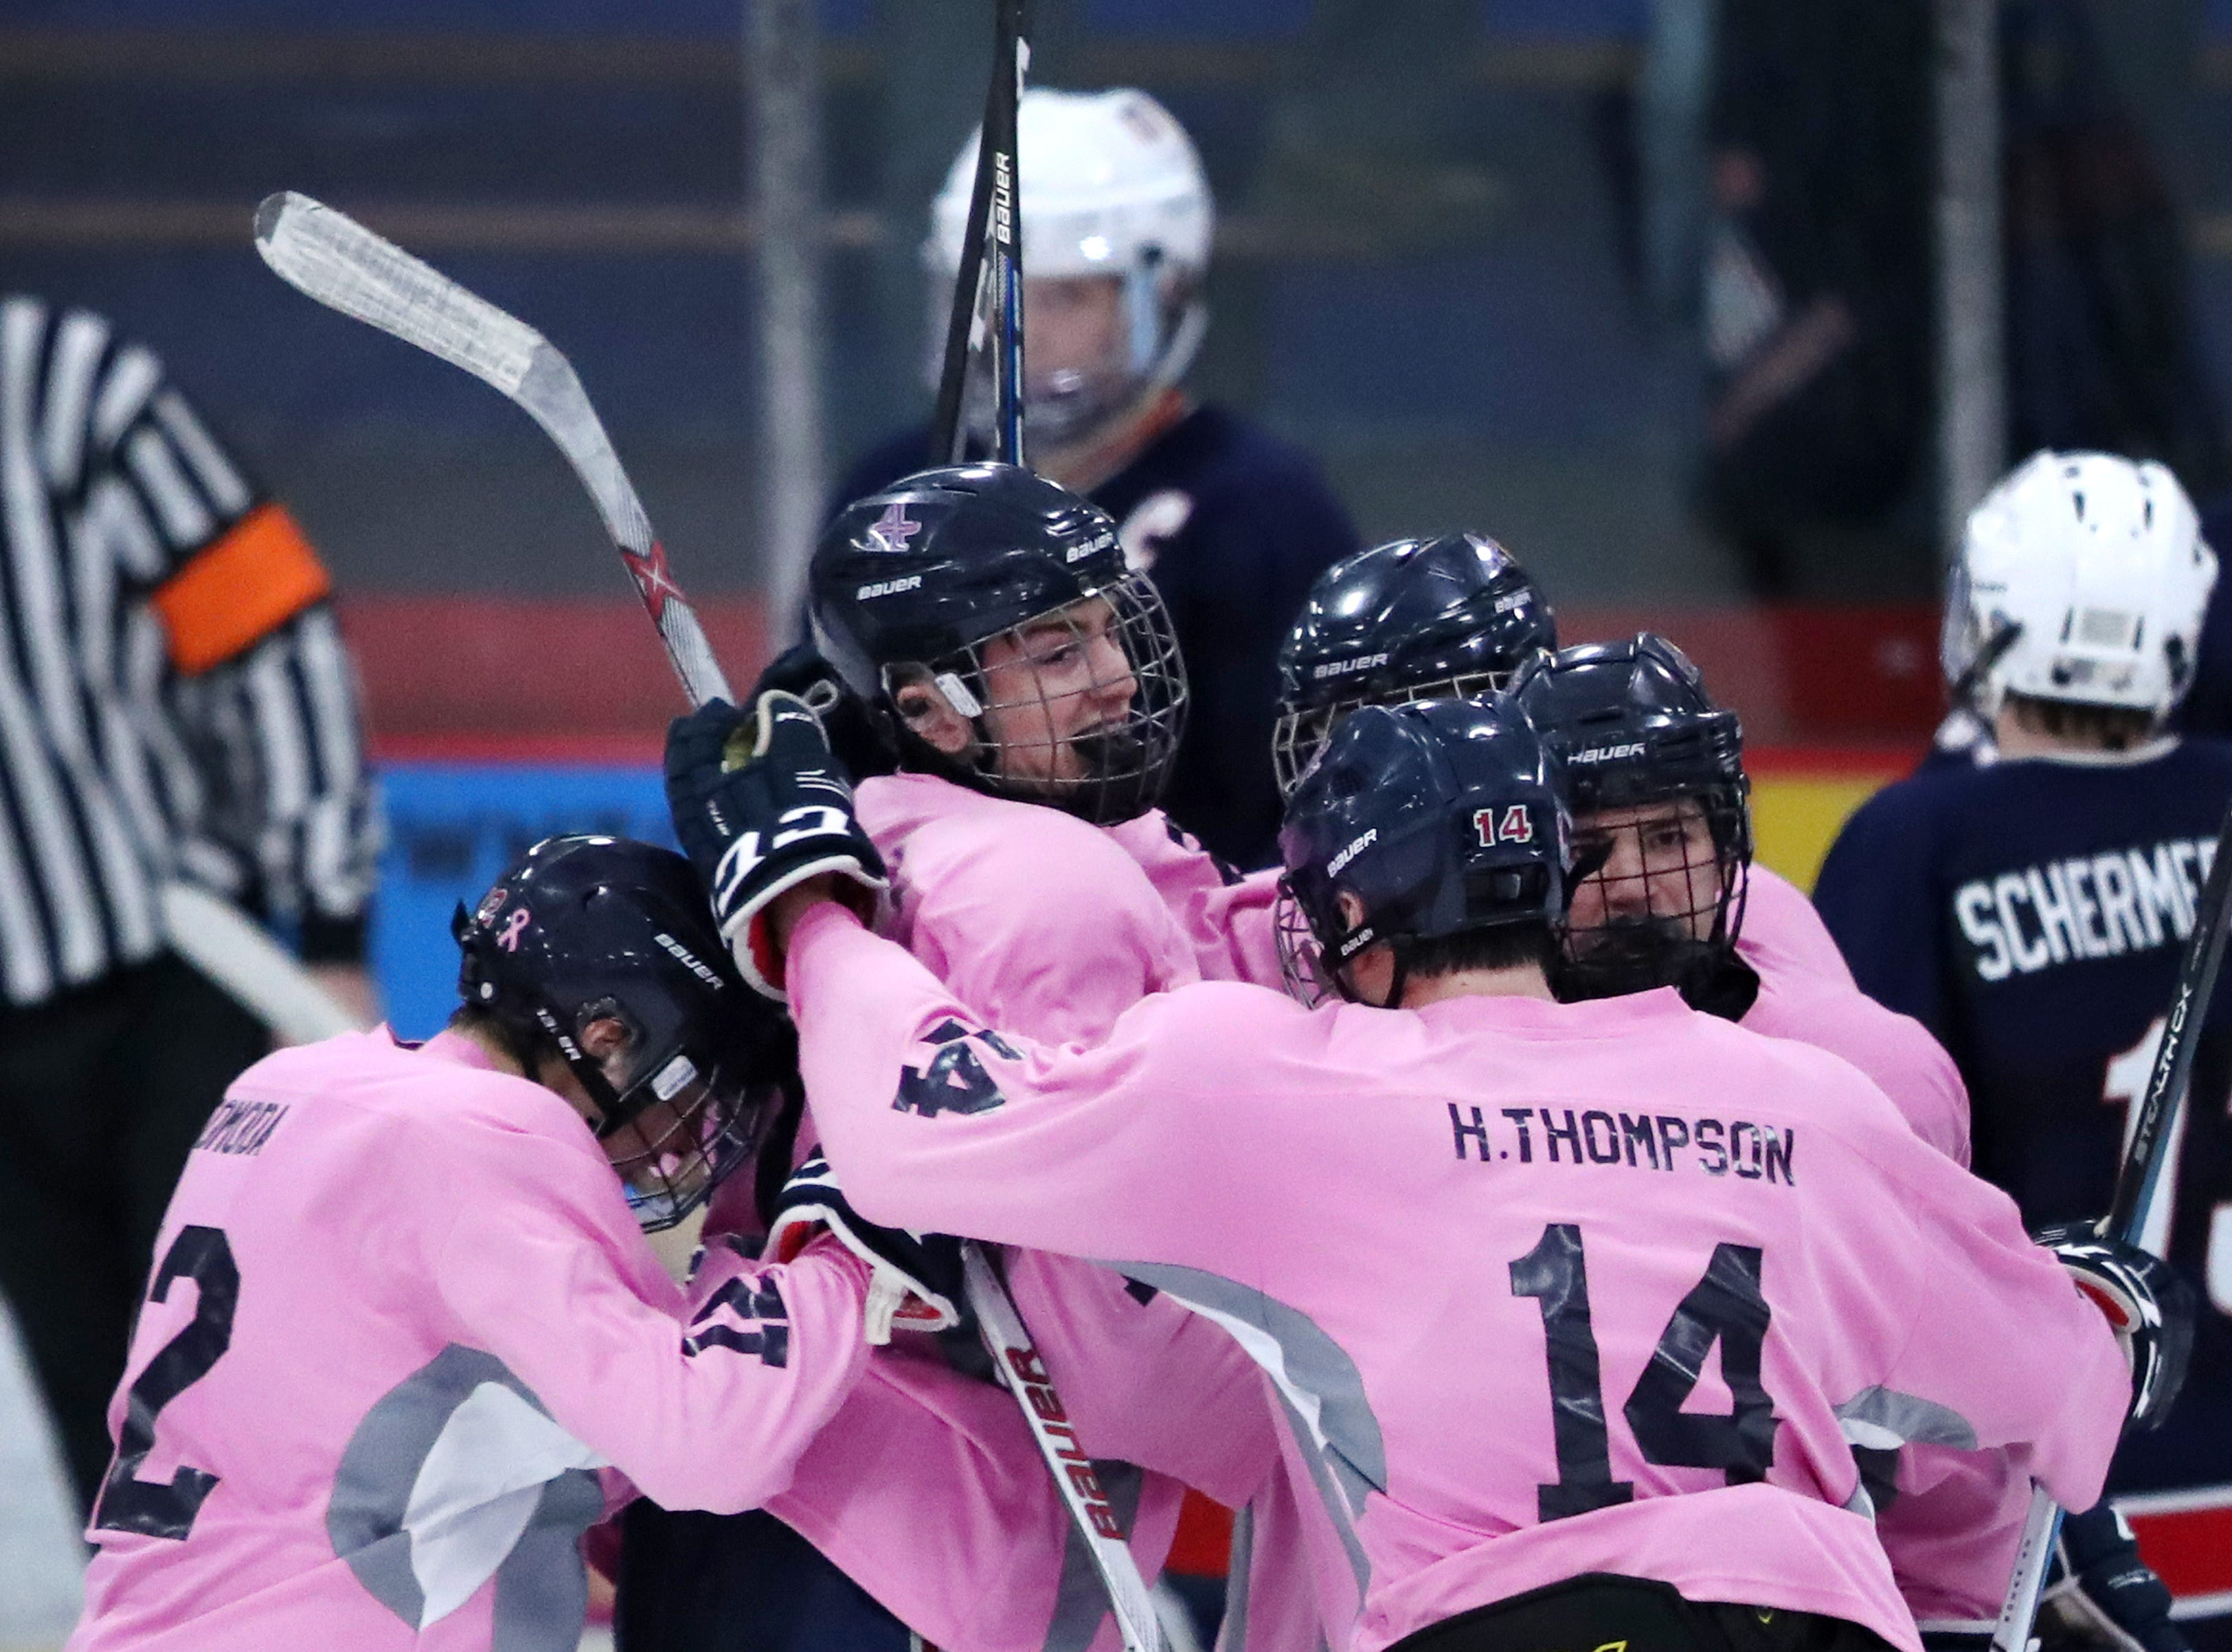 Appleton UnitedÕs Ethan Baker is surrounded by teammates after scoring against the Fox Cities Stars Thursday, Dec. 13, 2018, in Appleton, Wis.Danny Damiani/USA TODAY NETWORK-Wisconsin